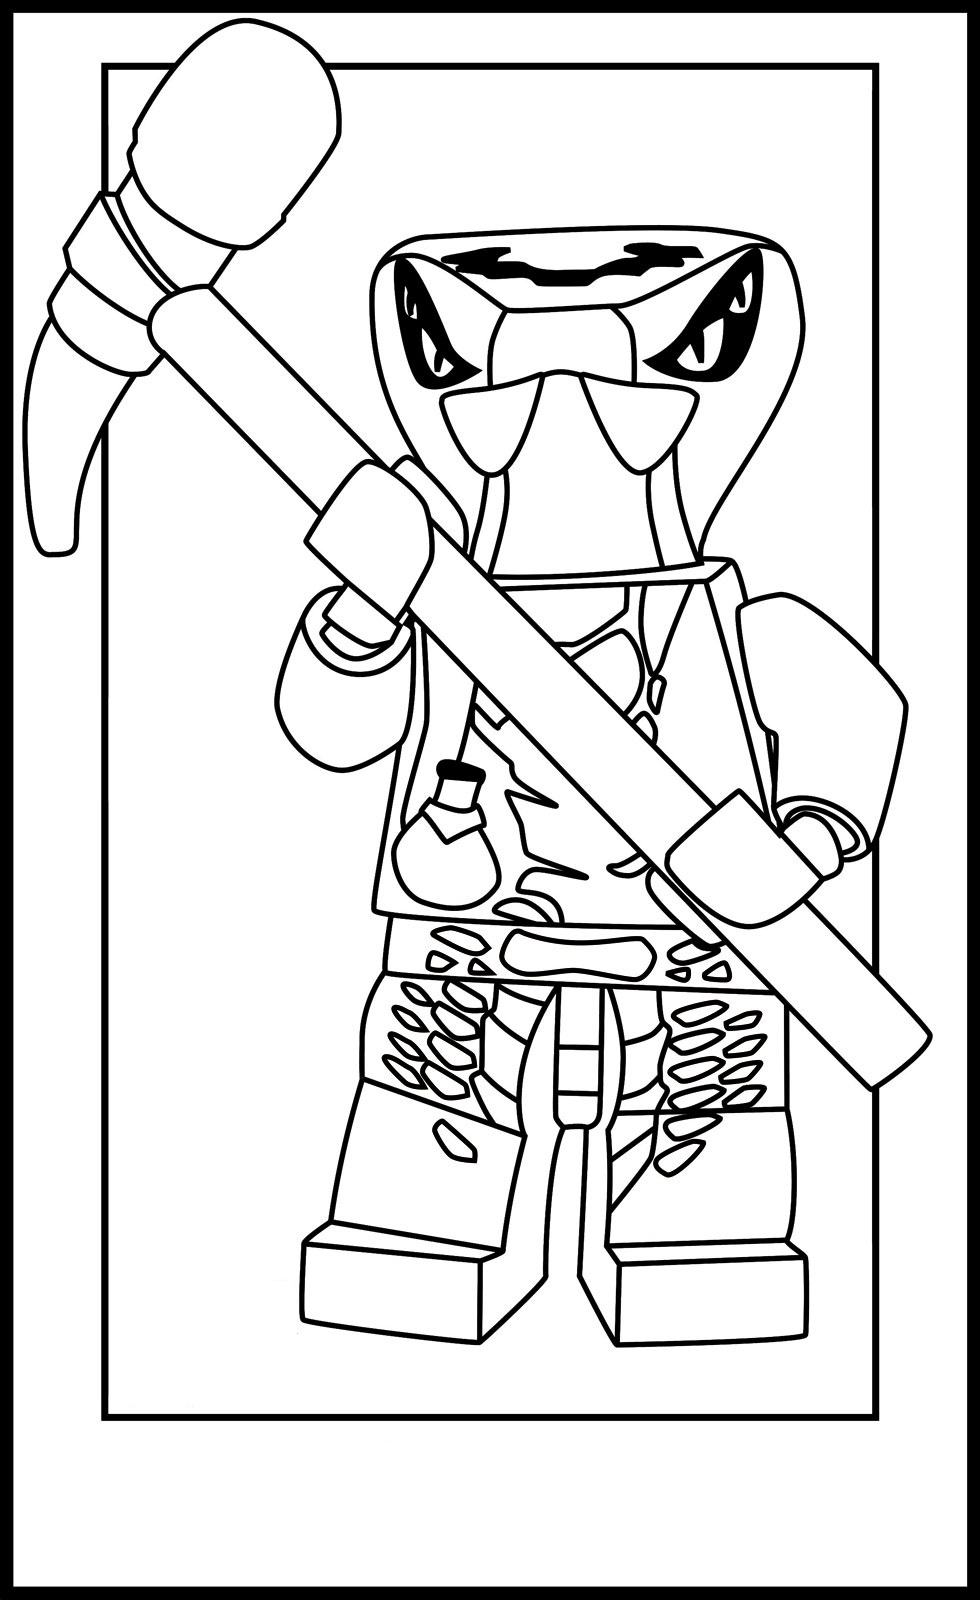 a coloring pages - photo#45